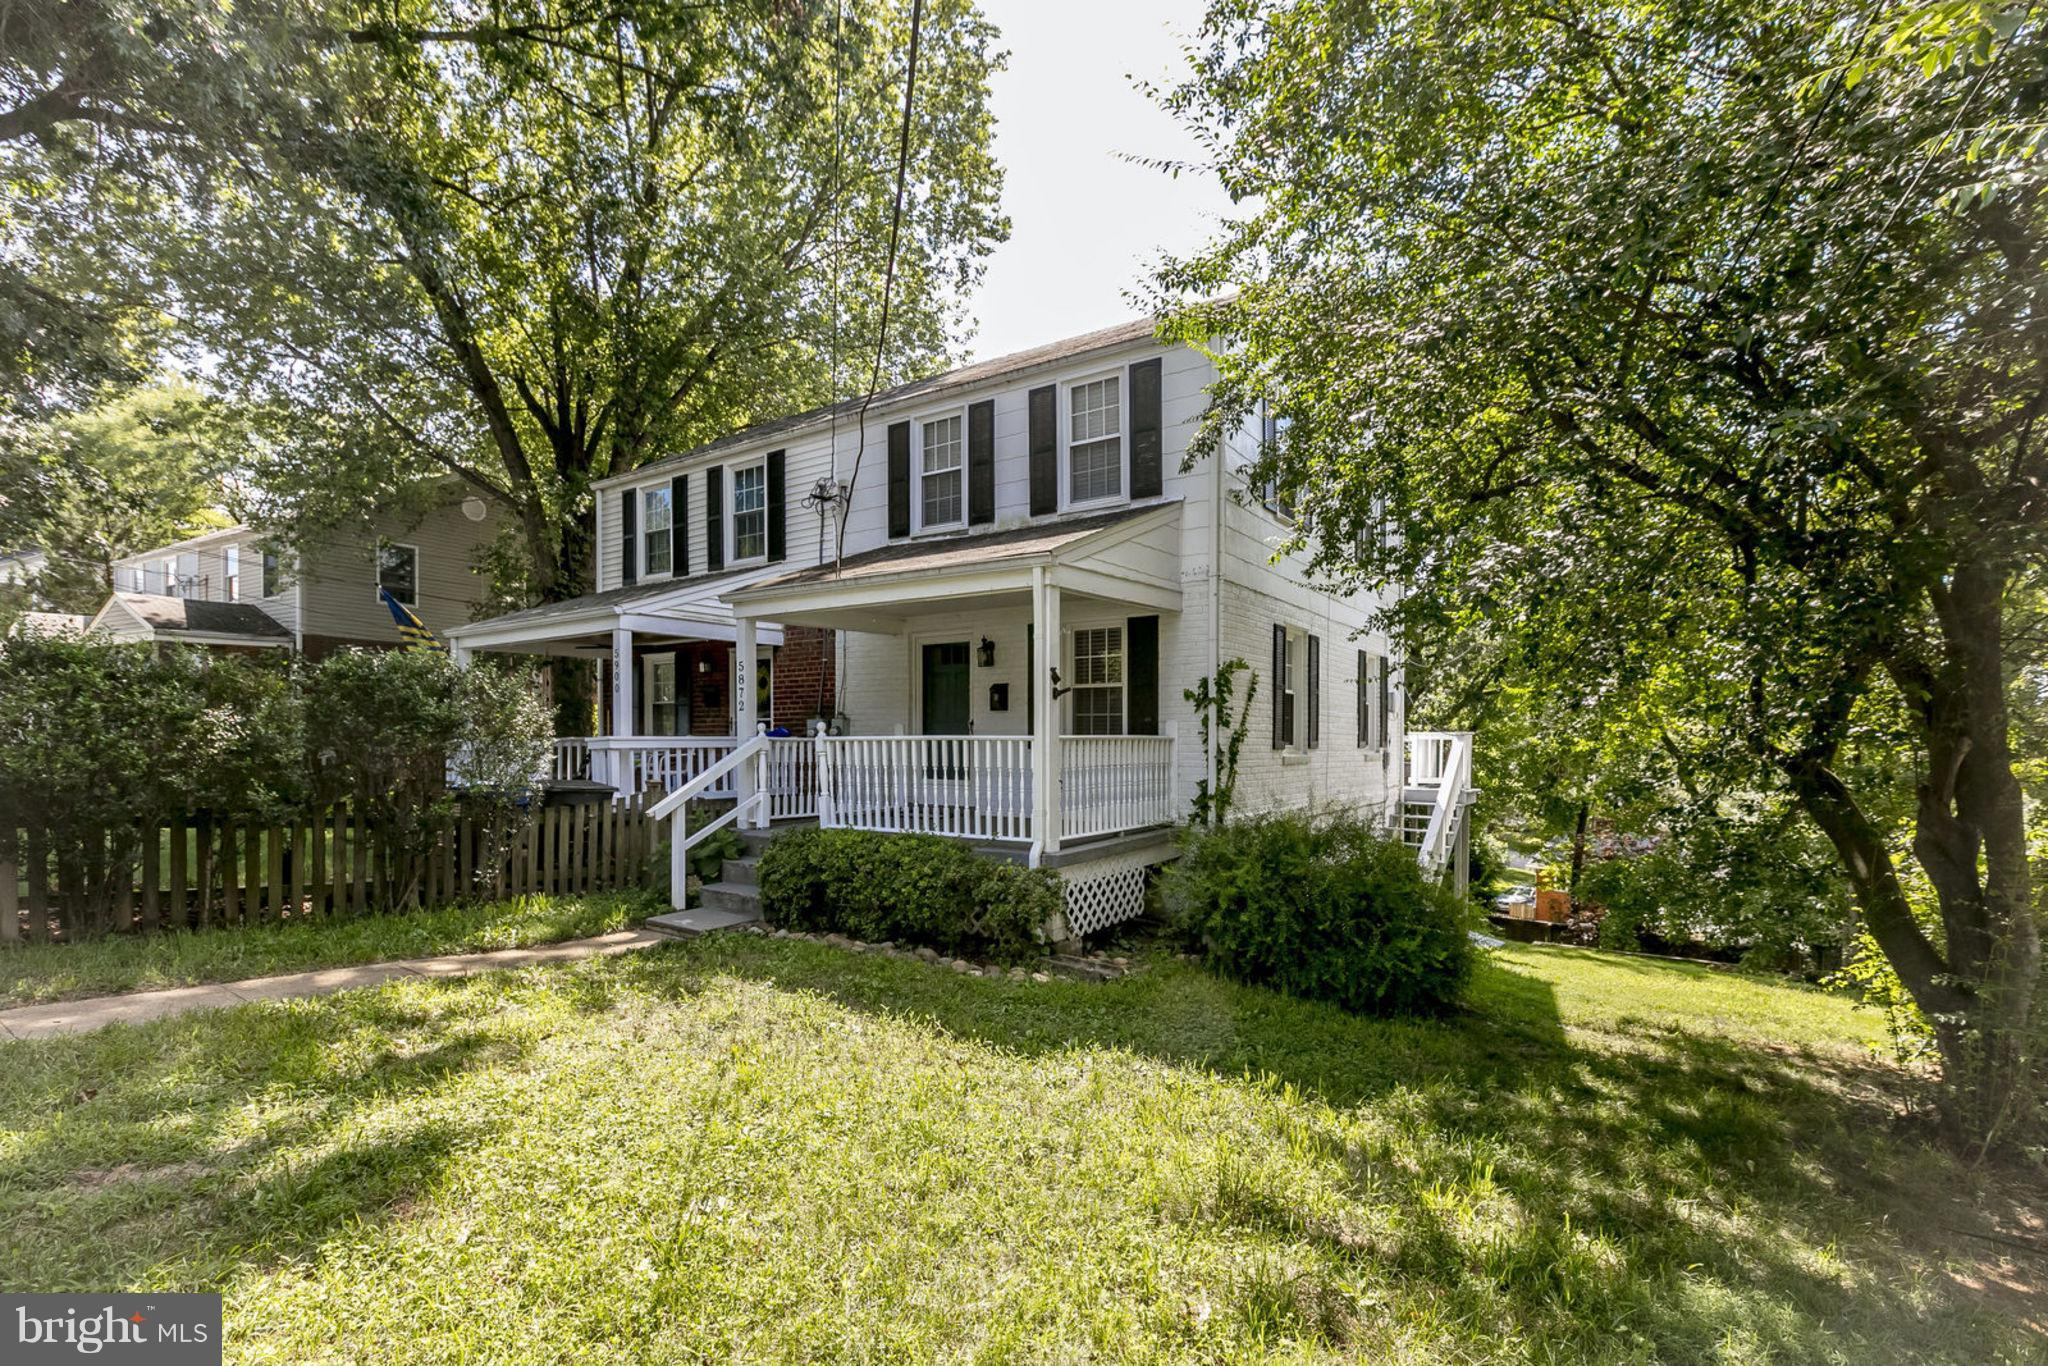 Price Reduction!!!  Charming Jefferson Manor duplex! 8 min walk to Metro. Large fenced yard, lovely front porch, back deck & storage shed. Fully finished basement with walk out (one of the few JM and lower deck. Opened kitchen with slider to the back deck.  Freshly painted.  Easy parking.